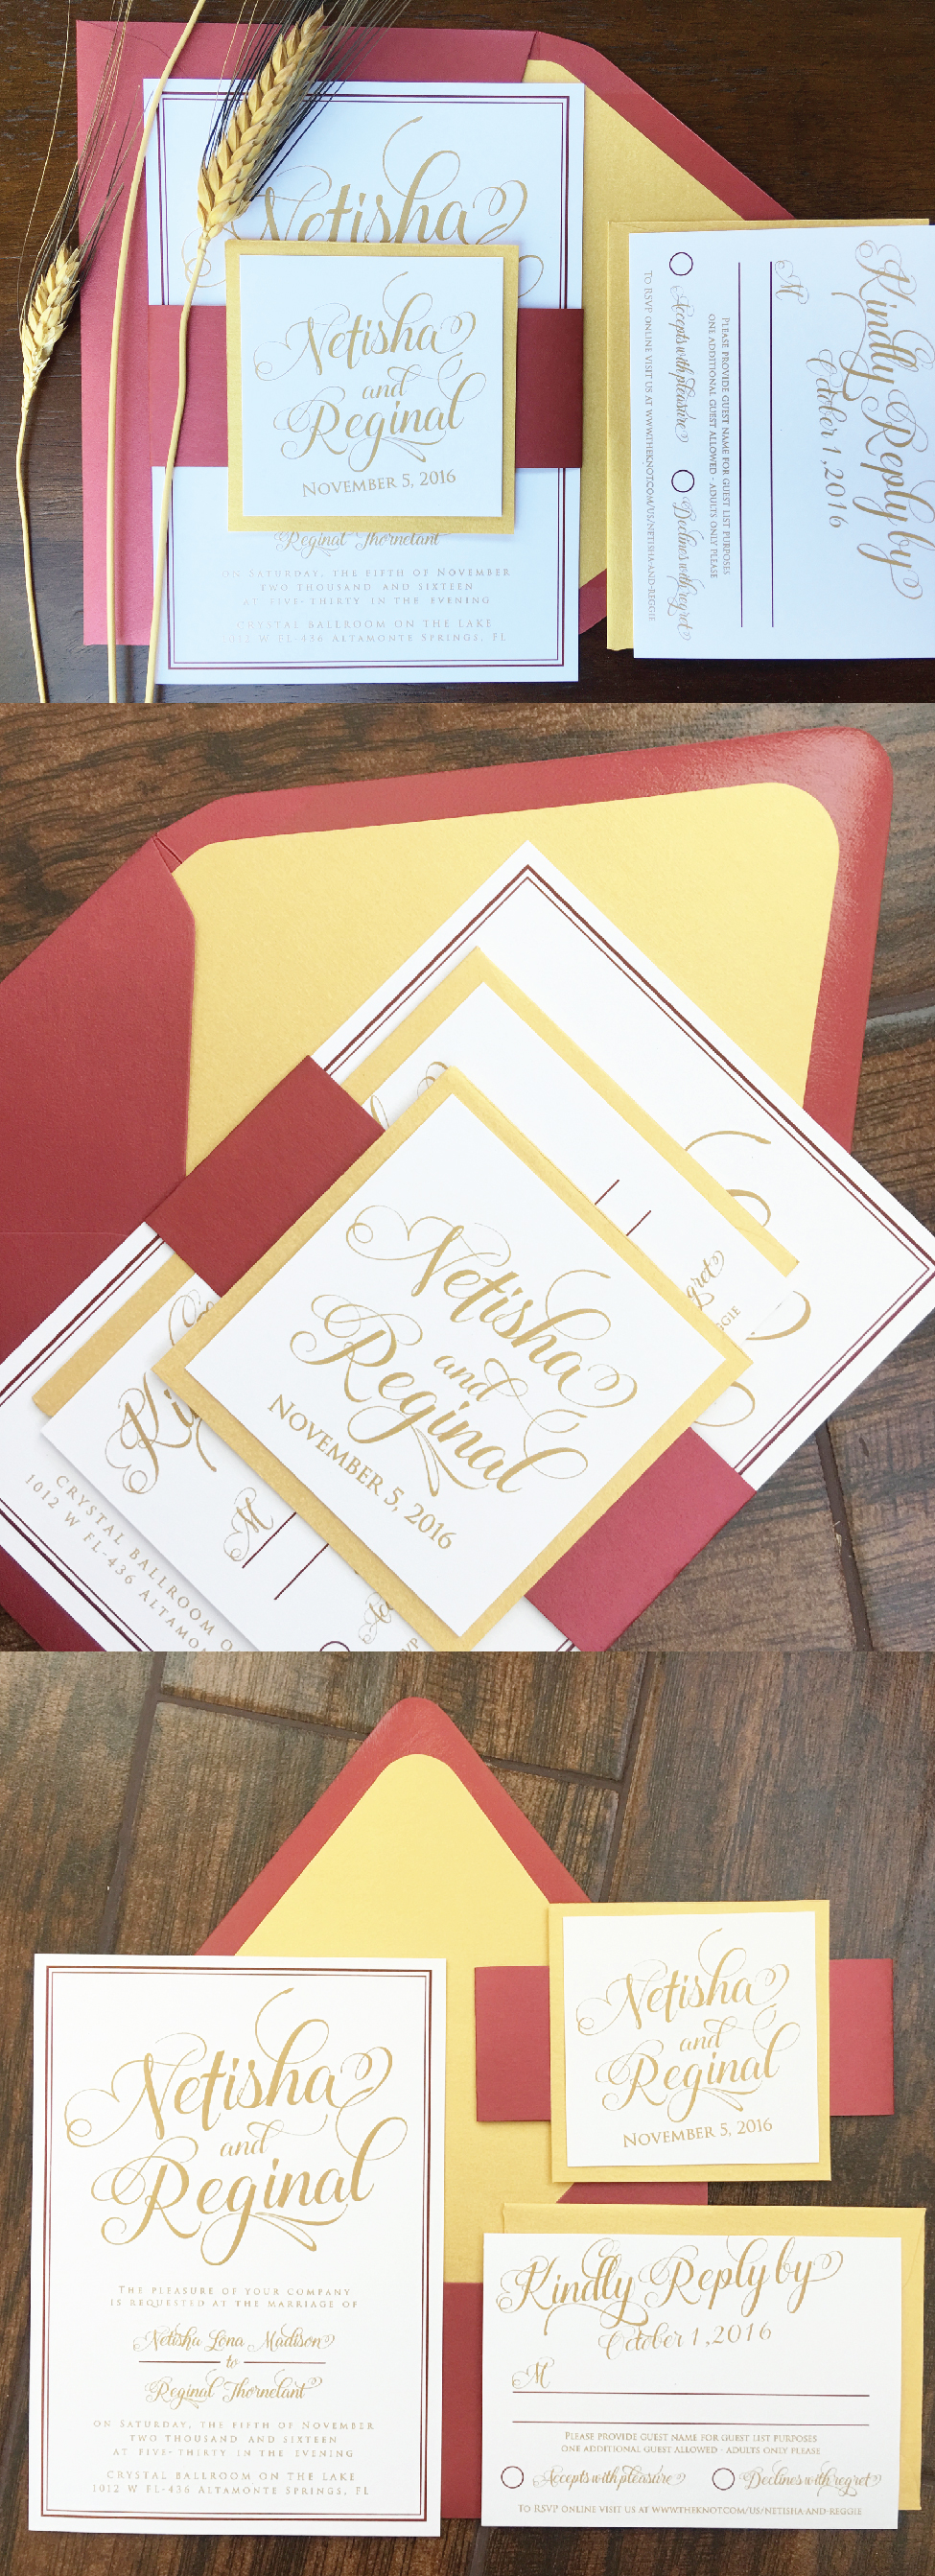 Fall Wedding Invitation, Elegant Wedding Invitations, Classic Wedding Invitations, Formal Wedding Invitations, Traditional Wedding Invitations, Unique Wedding Invitations, Custom Wedding Invitations,